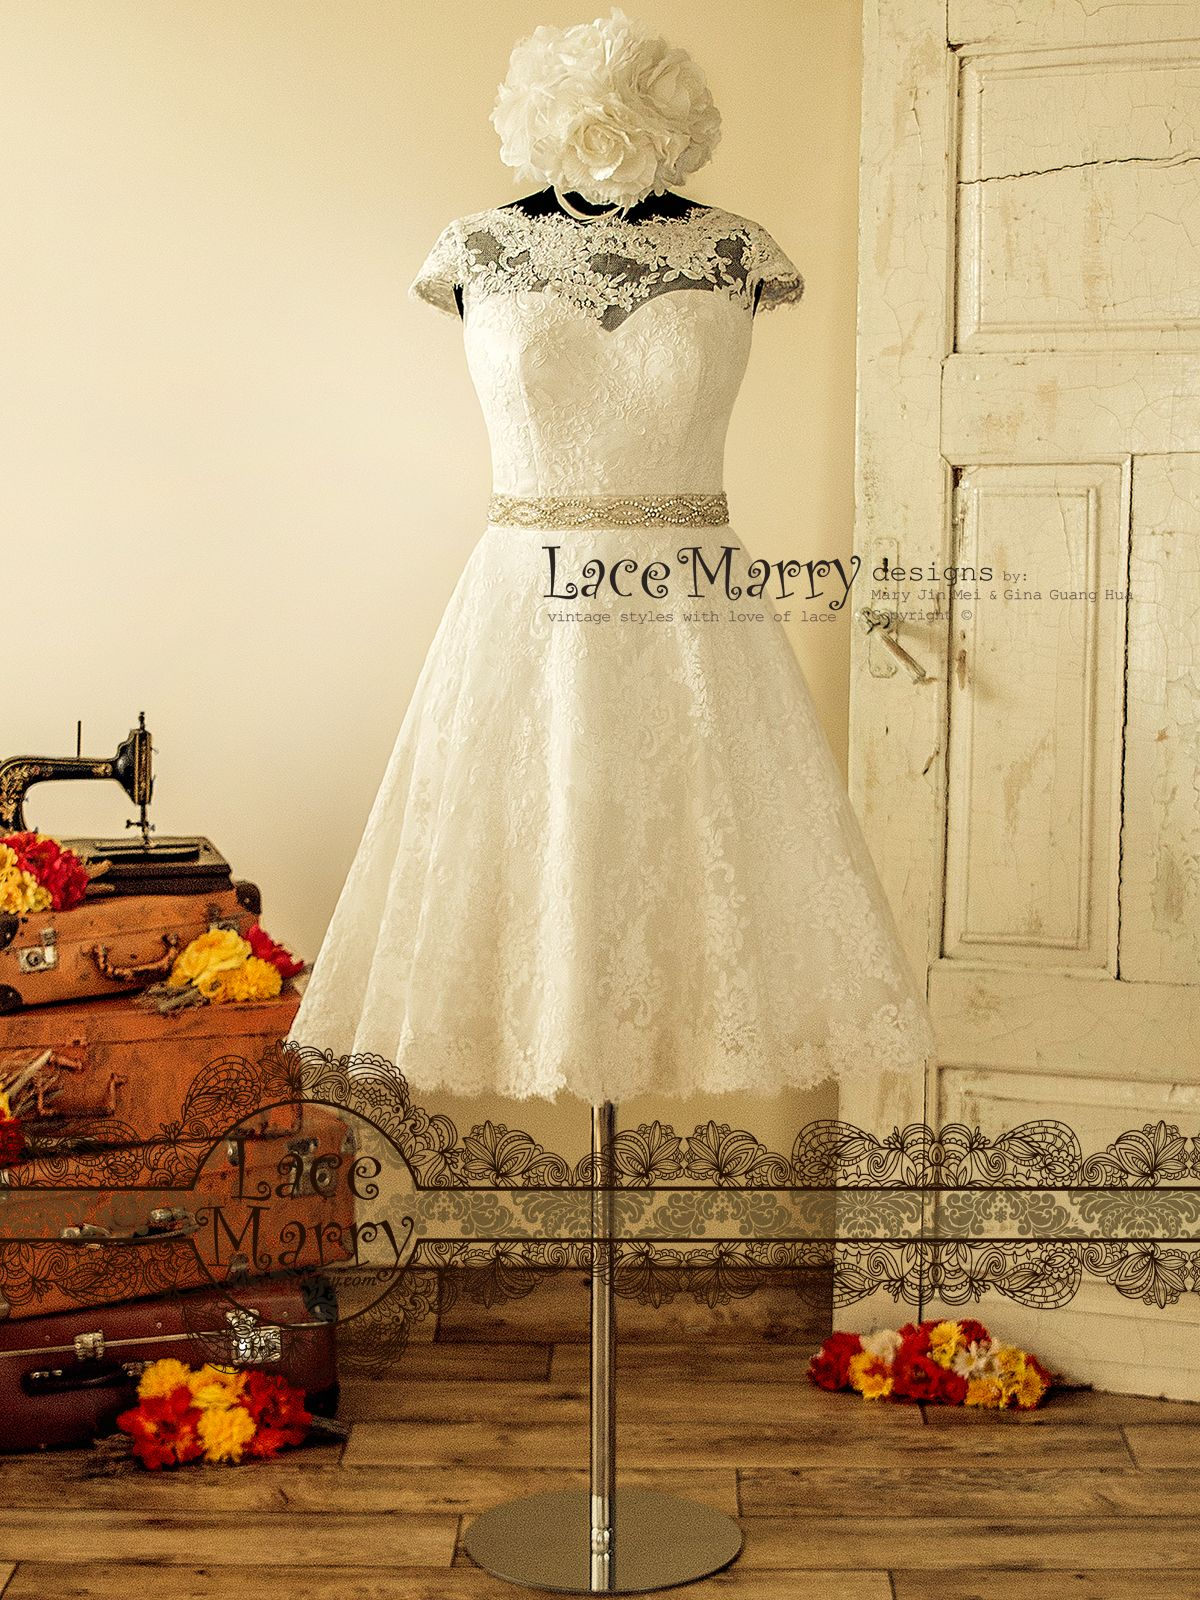 Knee length vintage style wedding dress from alencon lace with wide